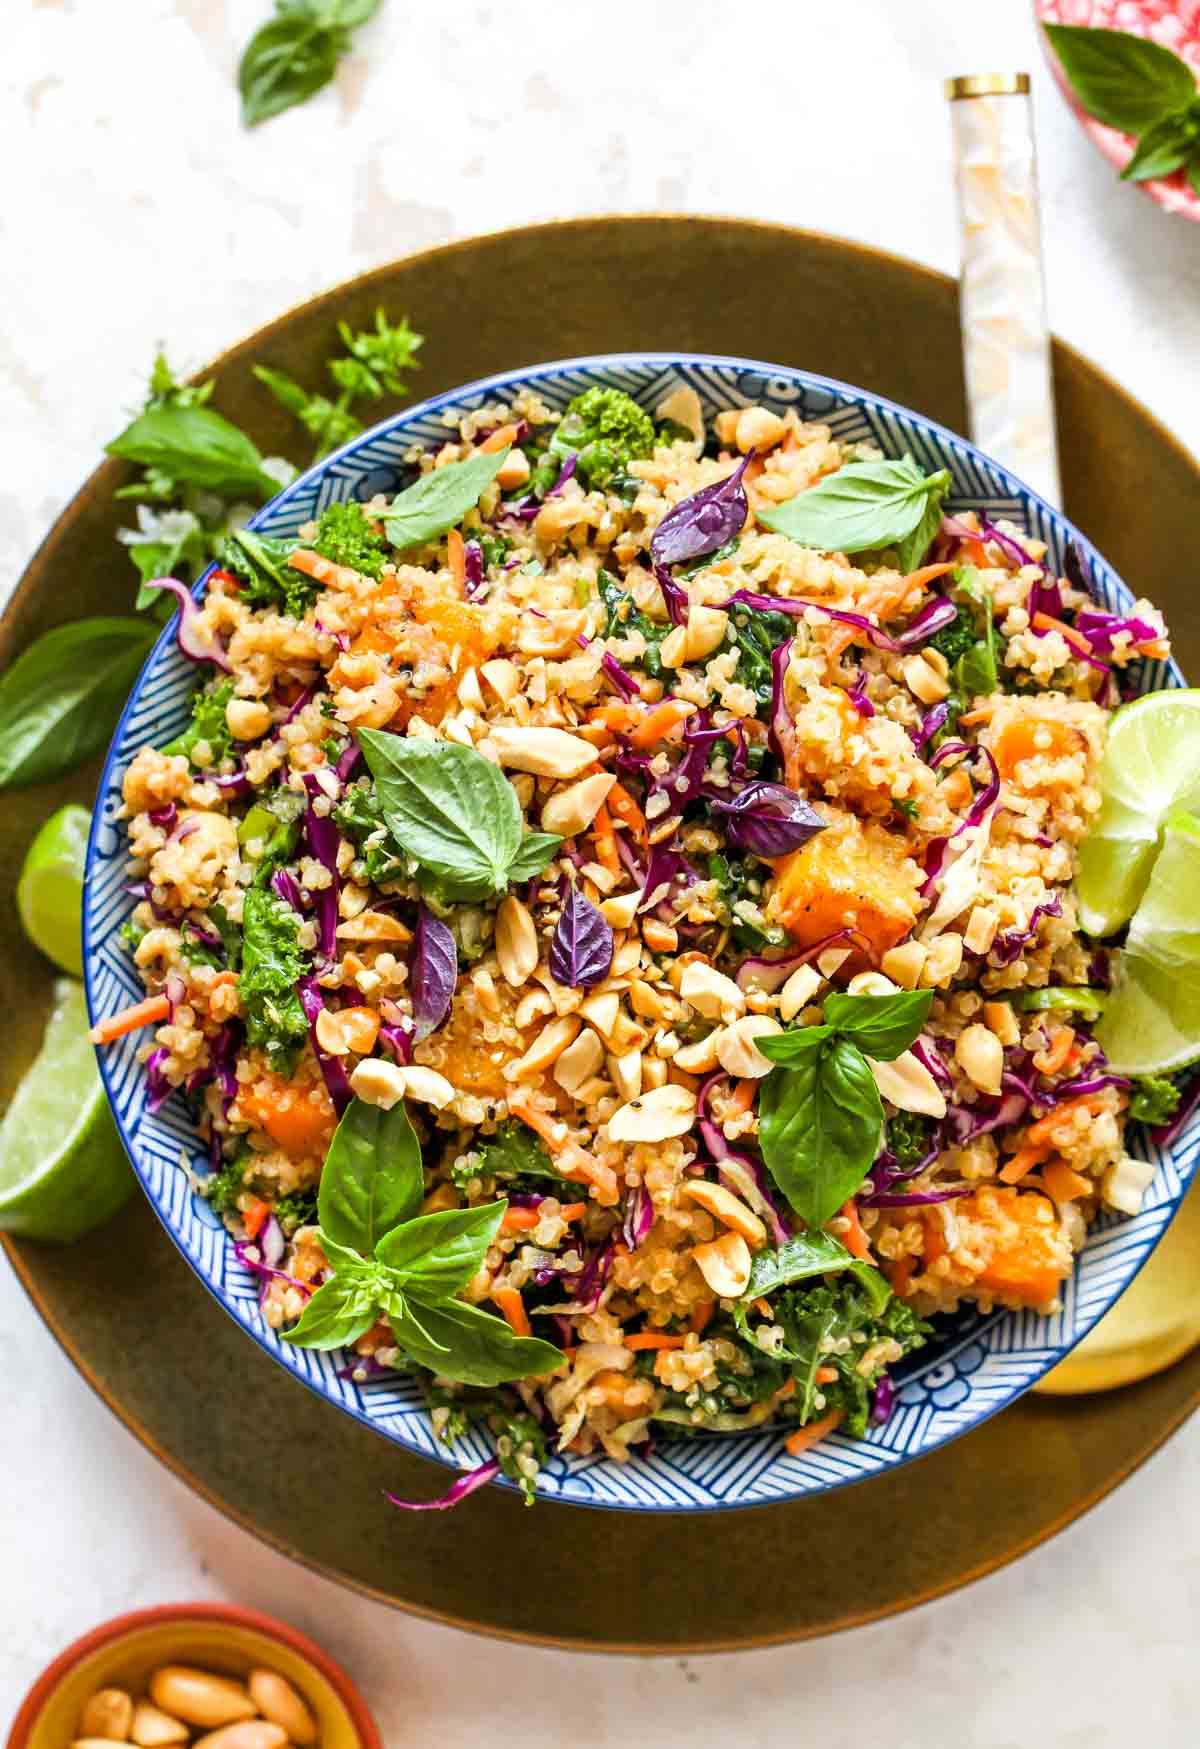 Thai Quinoa Salad with butternut squash, kale, and creamy ginger dressing